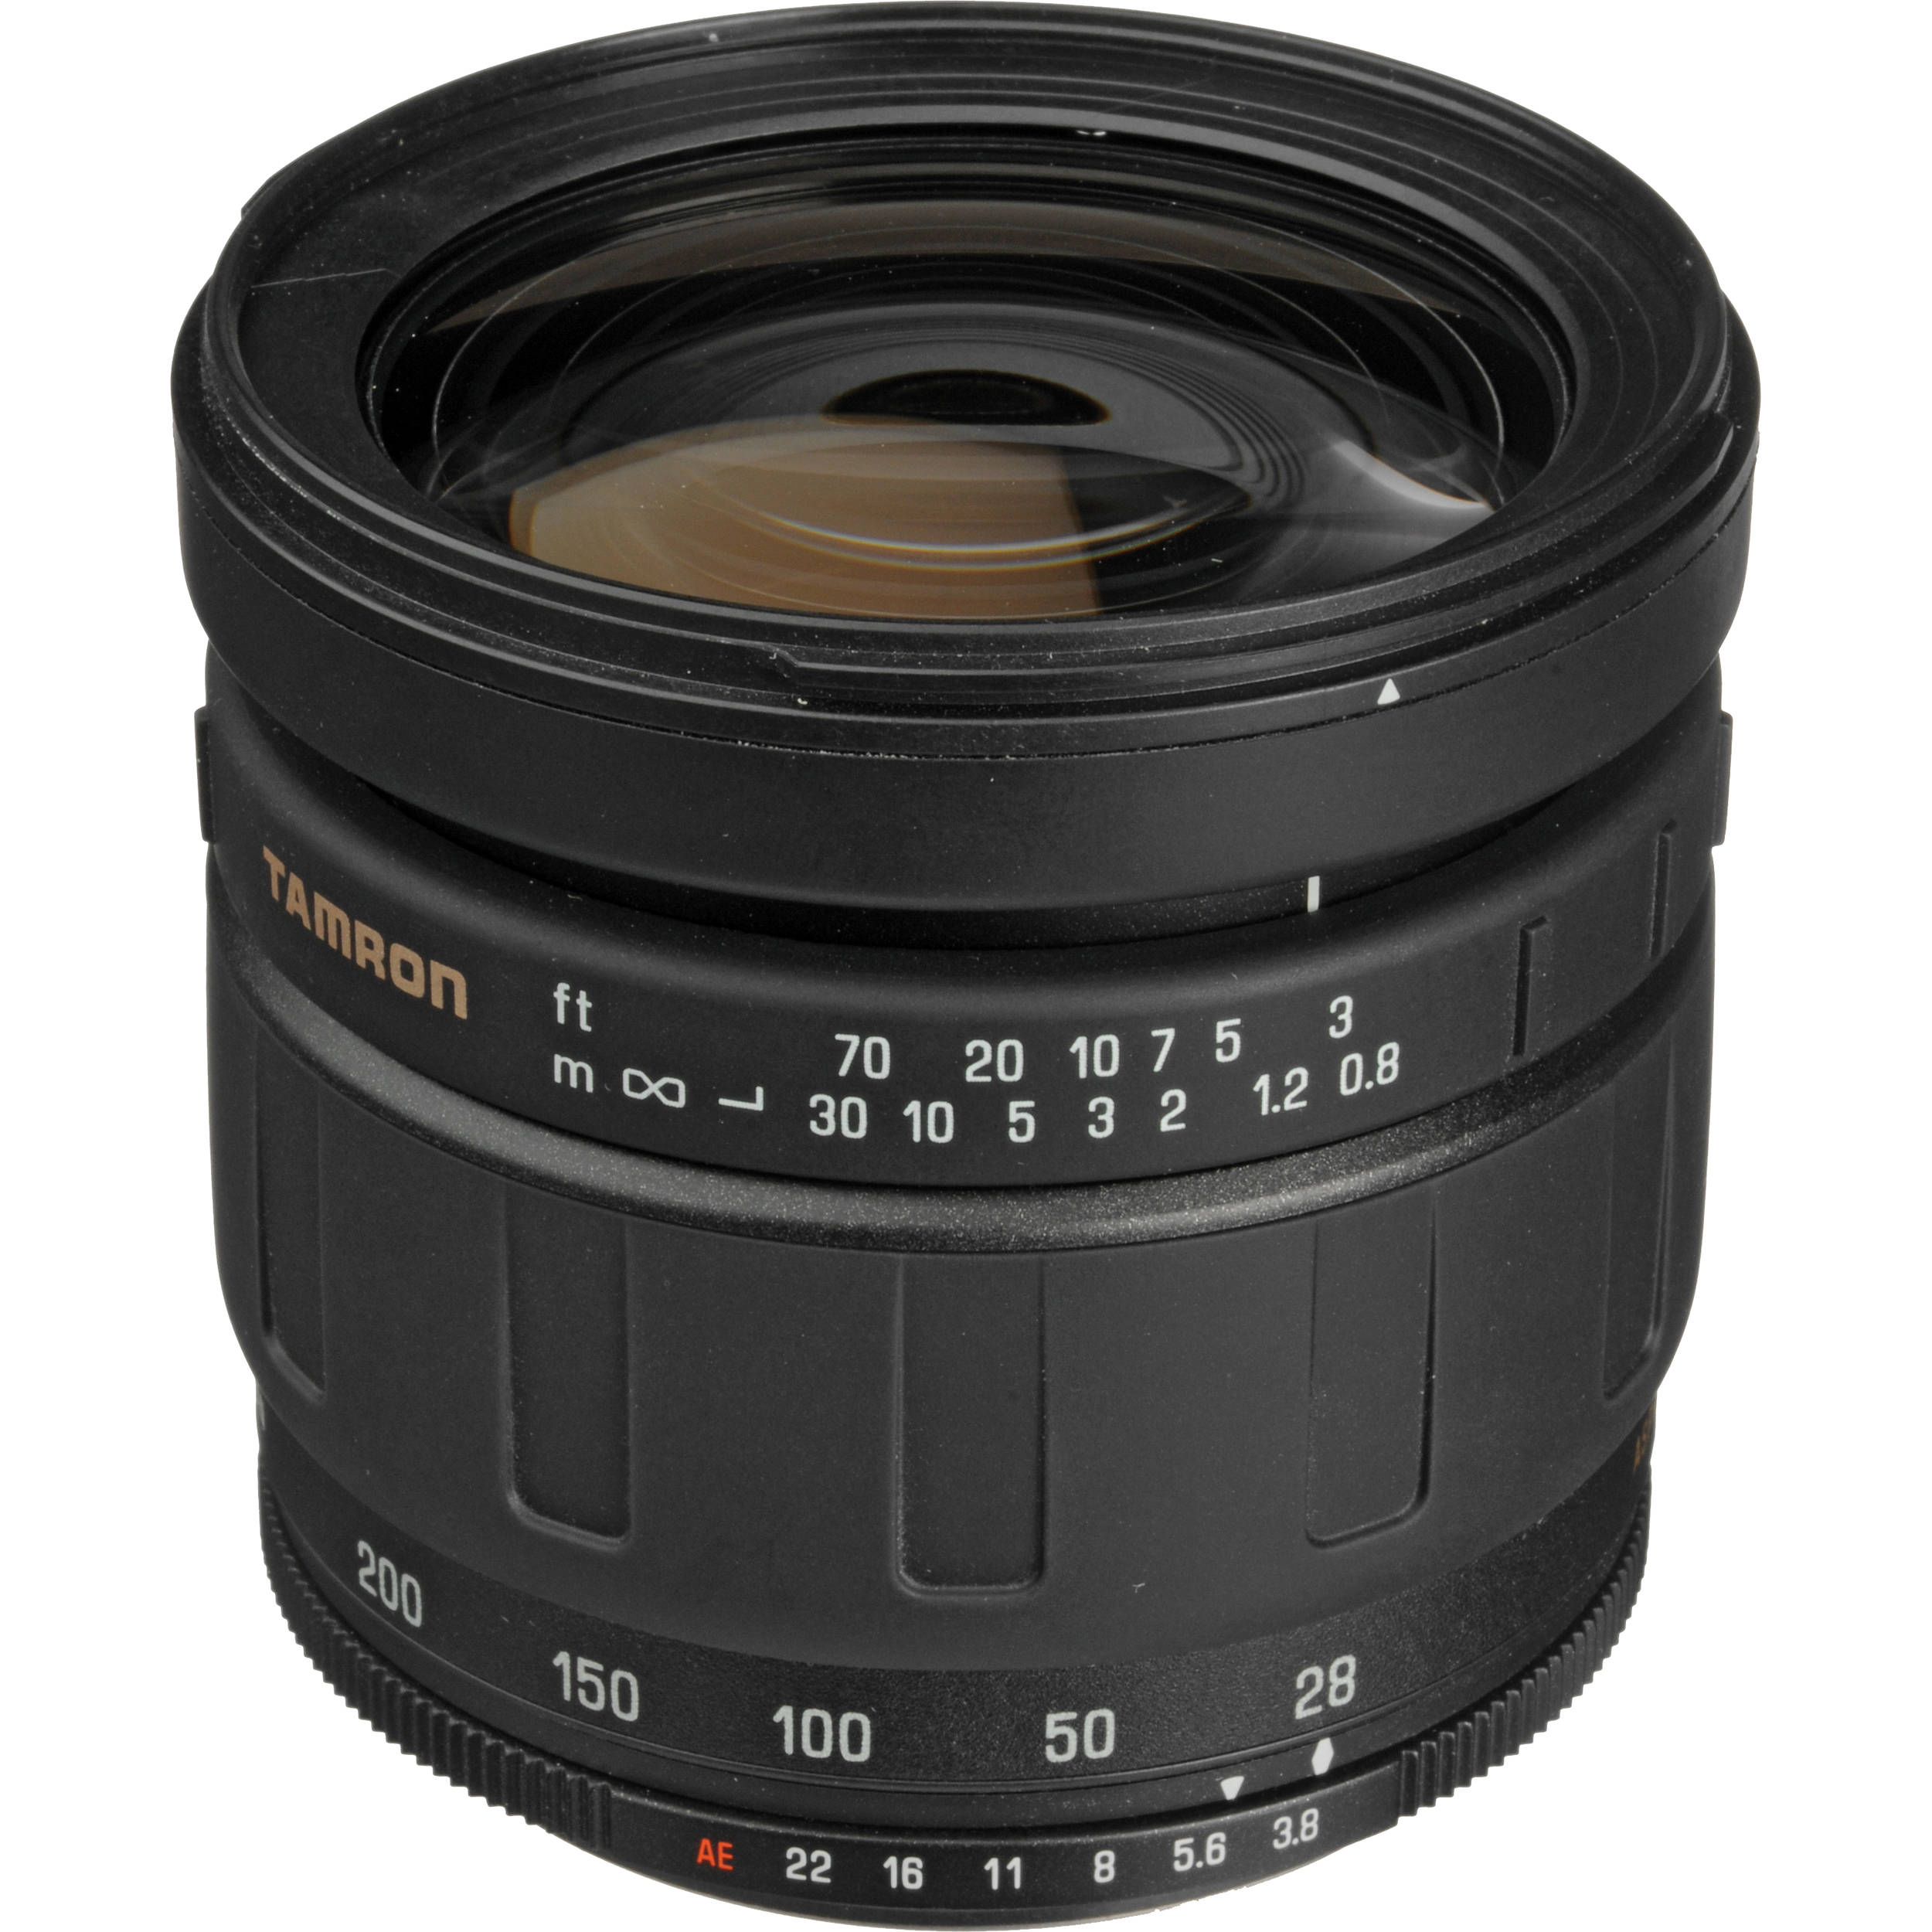 81cbaa7831d4 First in class  The Tamron Zoom Wide Angle-Telephoto 28-200mm f 3.8-5.6  Aspherical LD IF lens